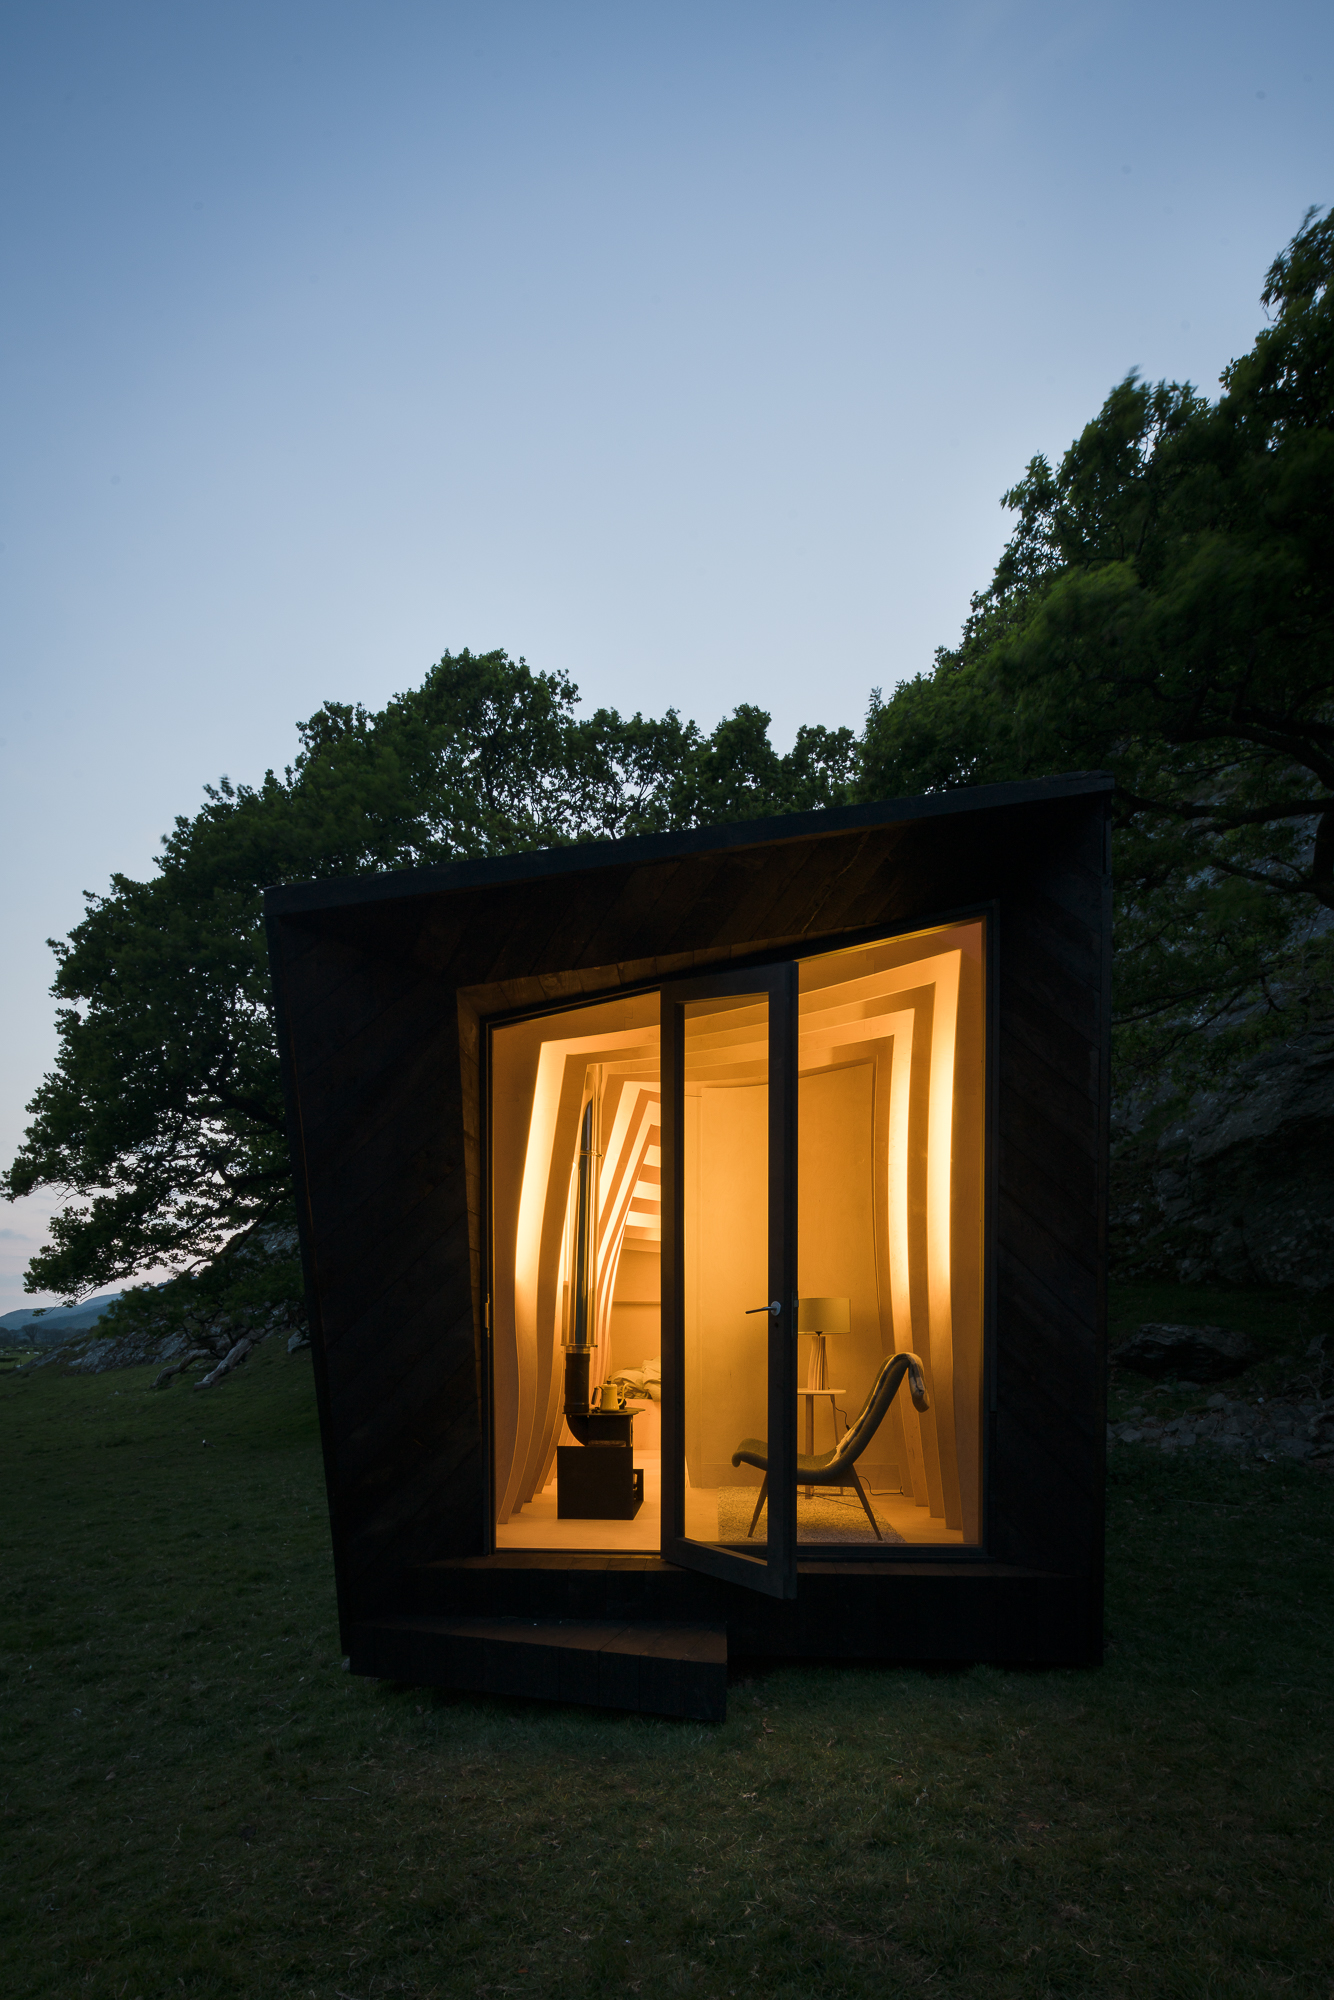 Pop-up Hotel by Miller Kendrick Architects